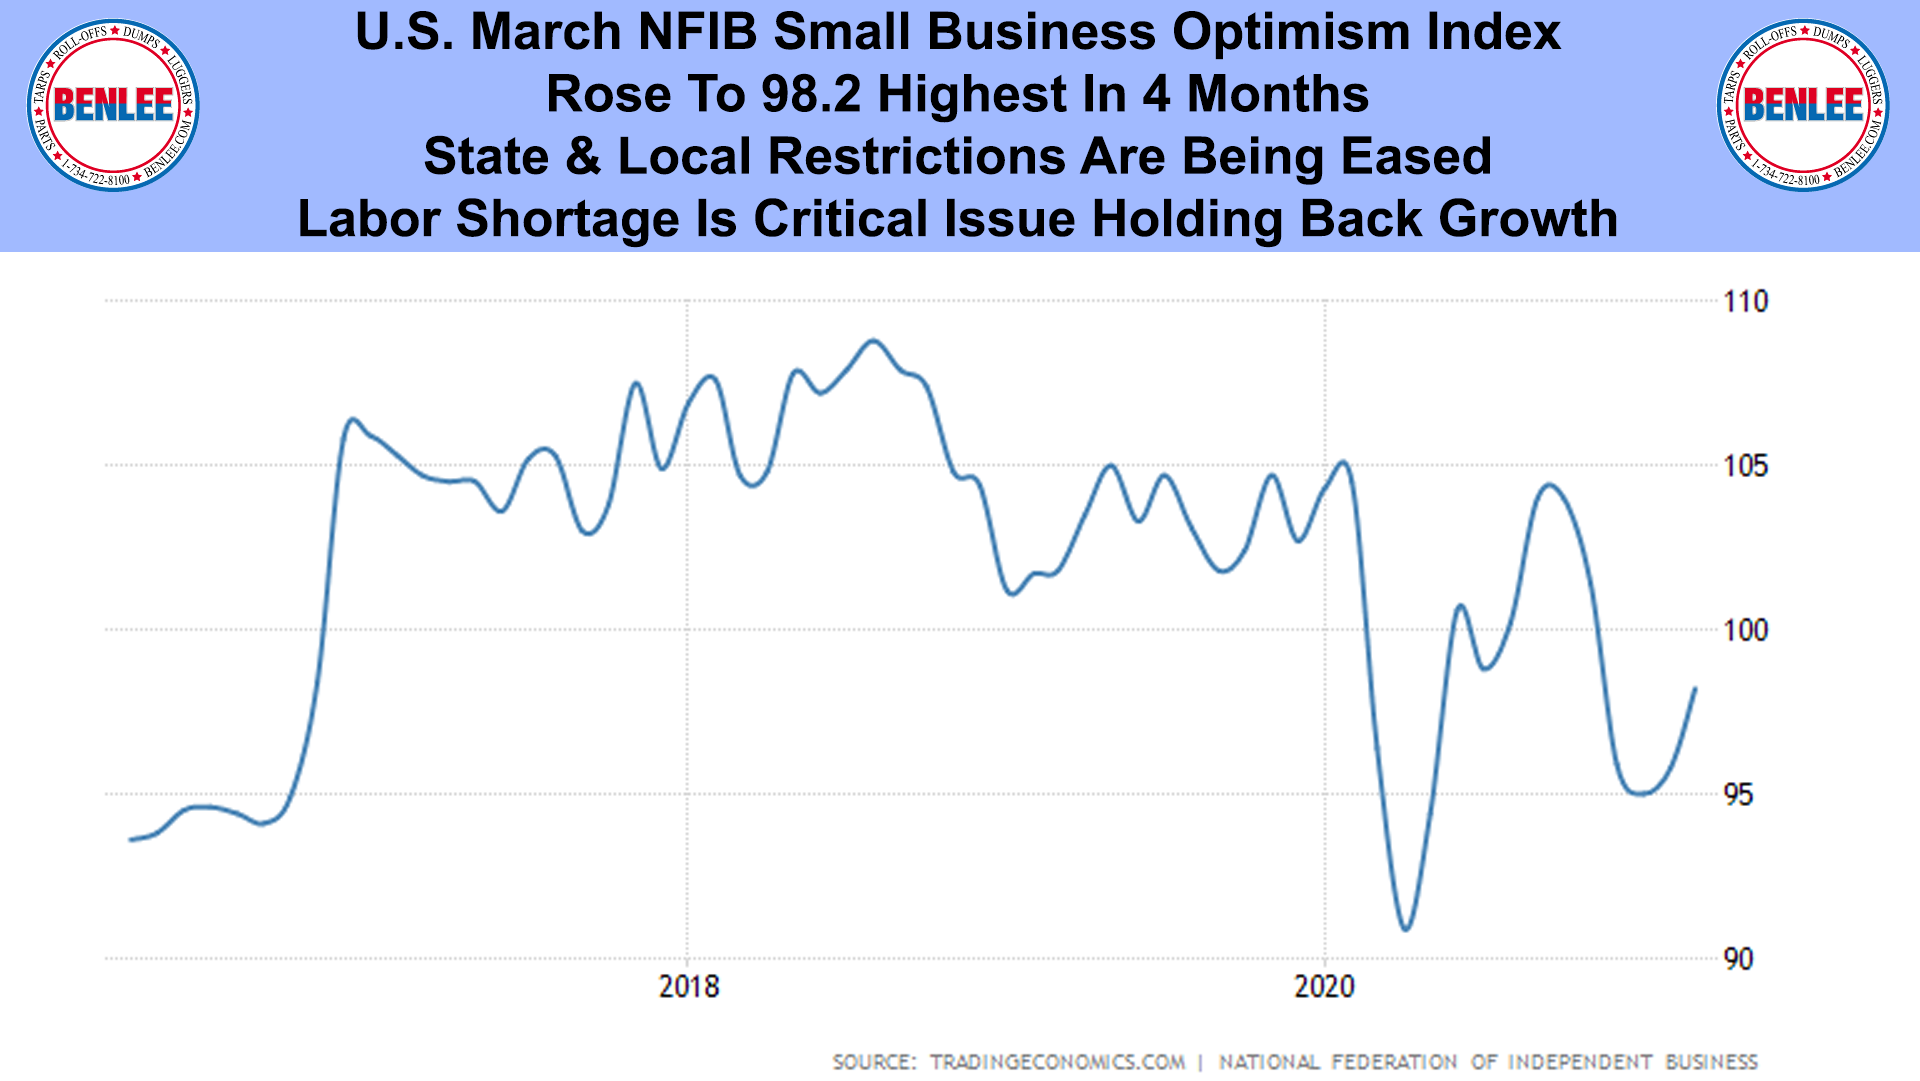 U.S. March NFIB Small Business Optimism Index